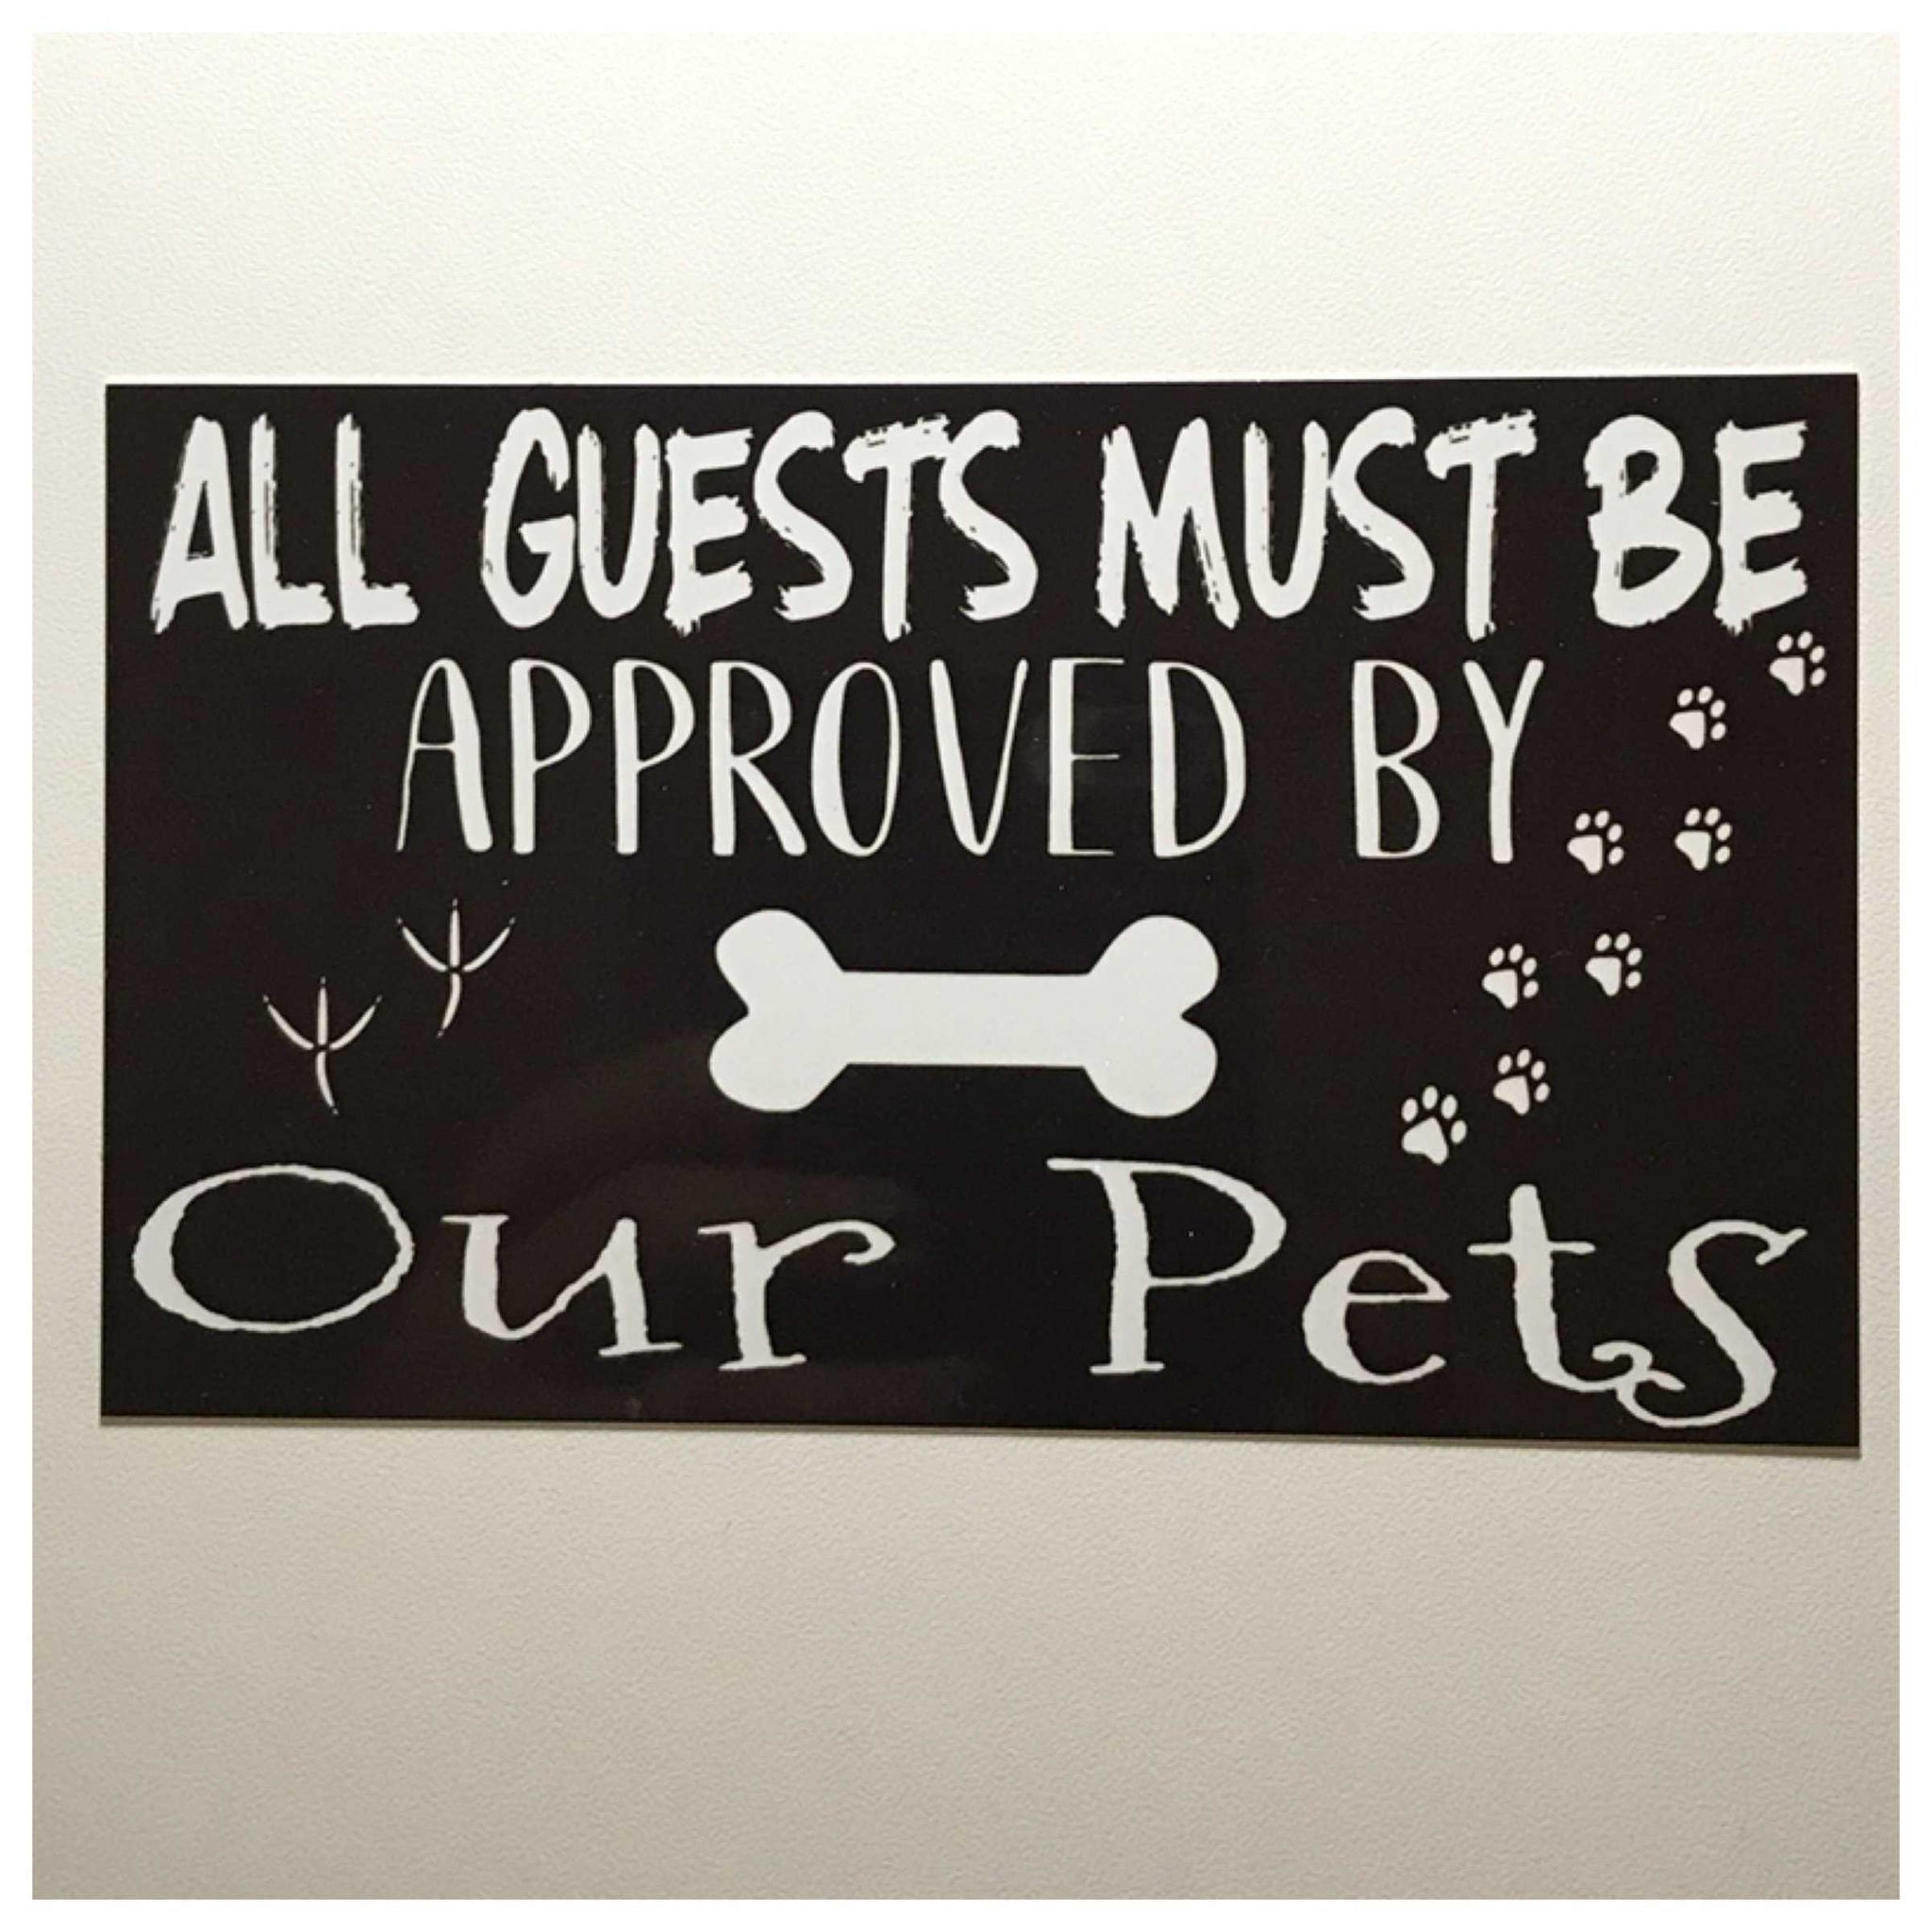 All Guests Must Be Approved By Our Pets Sign - The Renmy Store